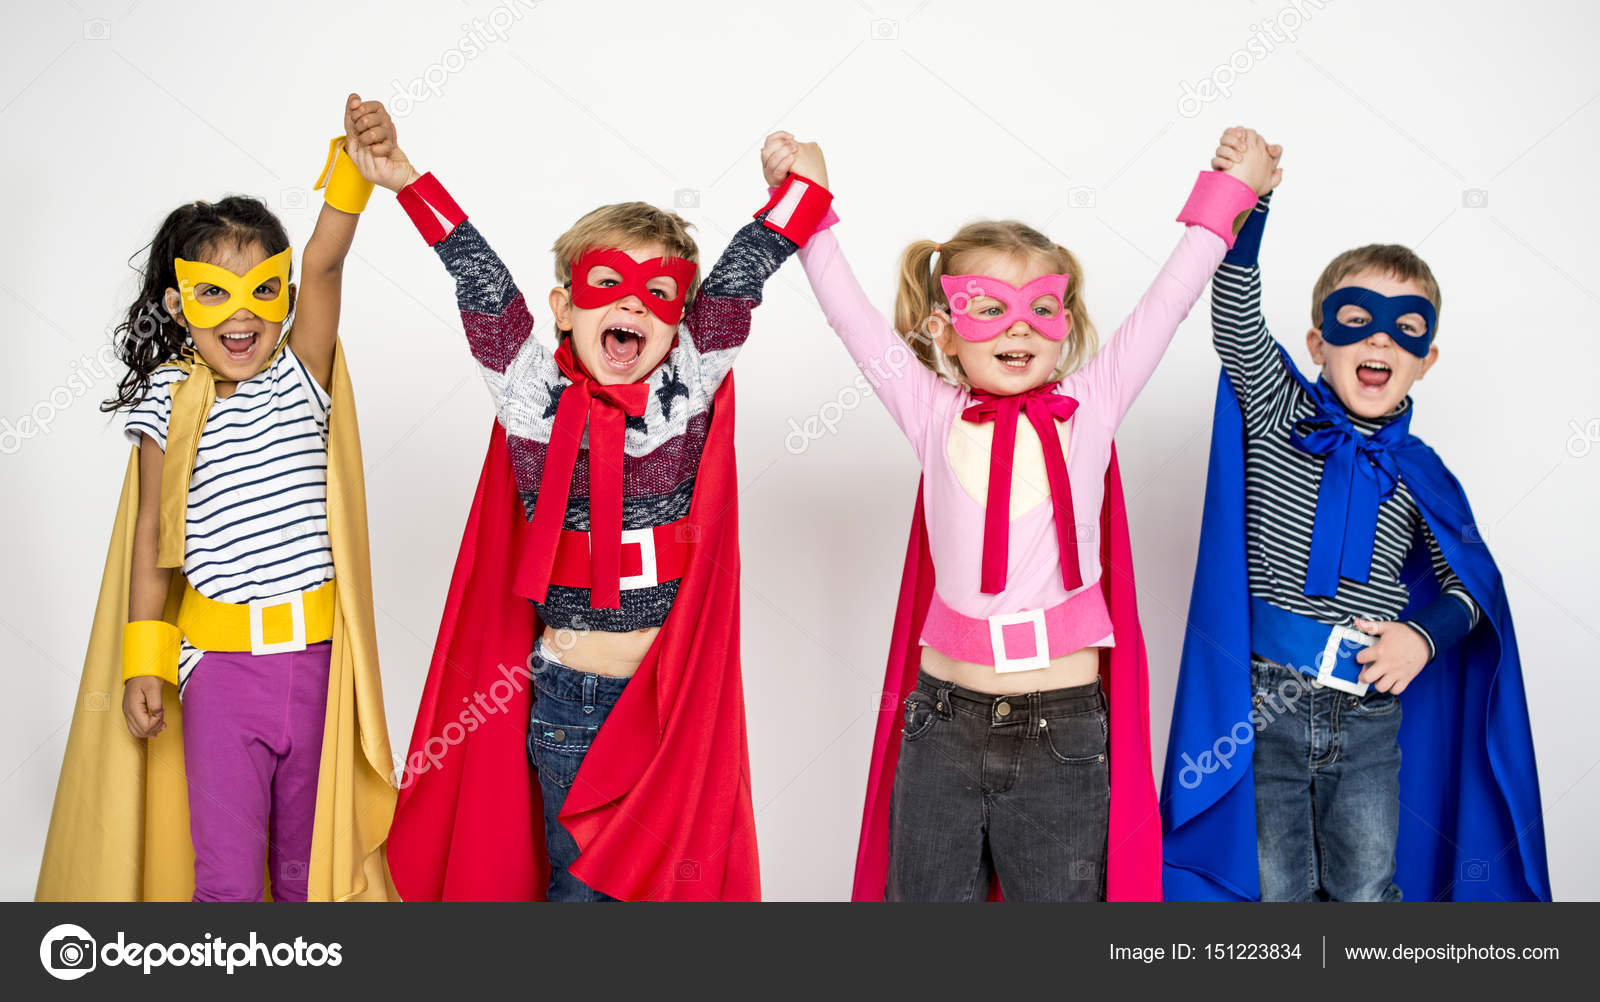 Happy children in Superhero costumes u2014 Stock Photo & happy children in Superhero costumes u2014 Stock Photo © Rawpixel #151223834